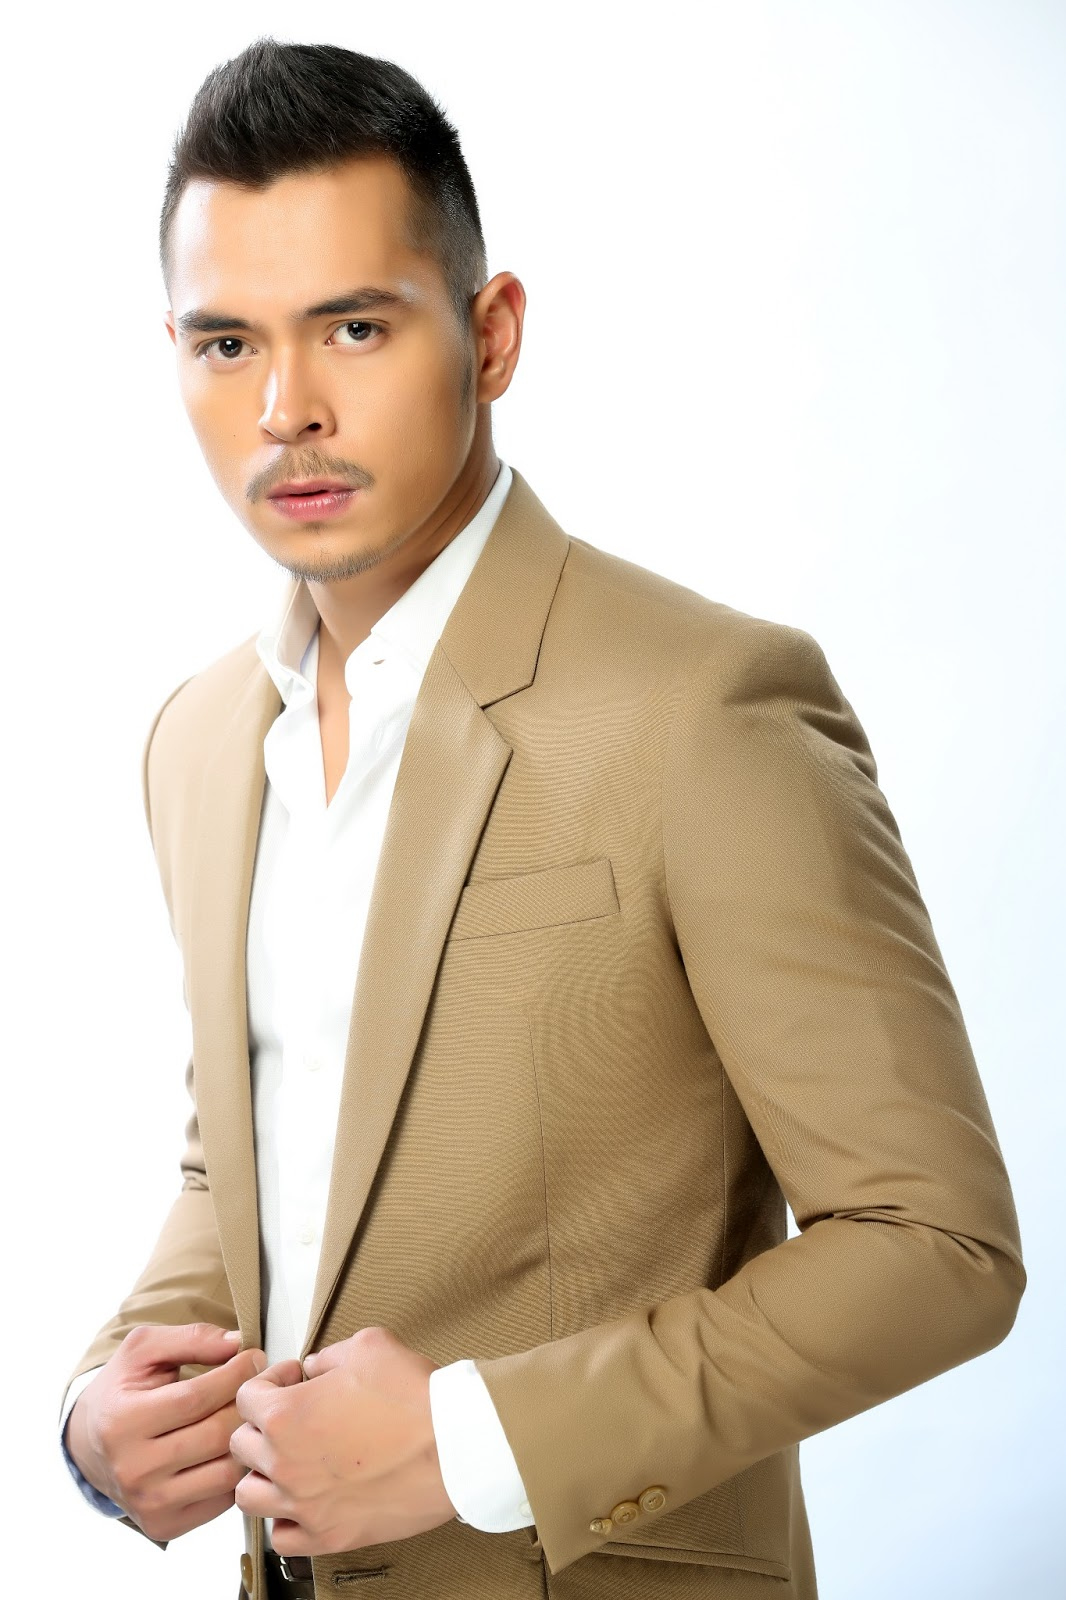 Top 20 Hottest Guys From The Philippines